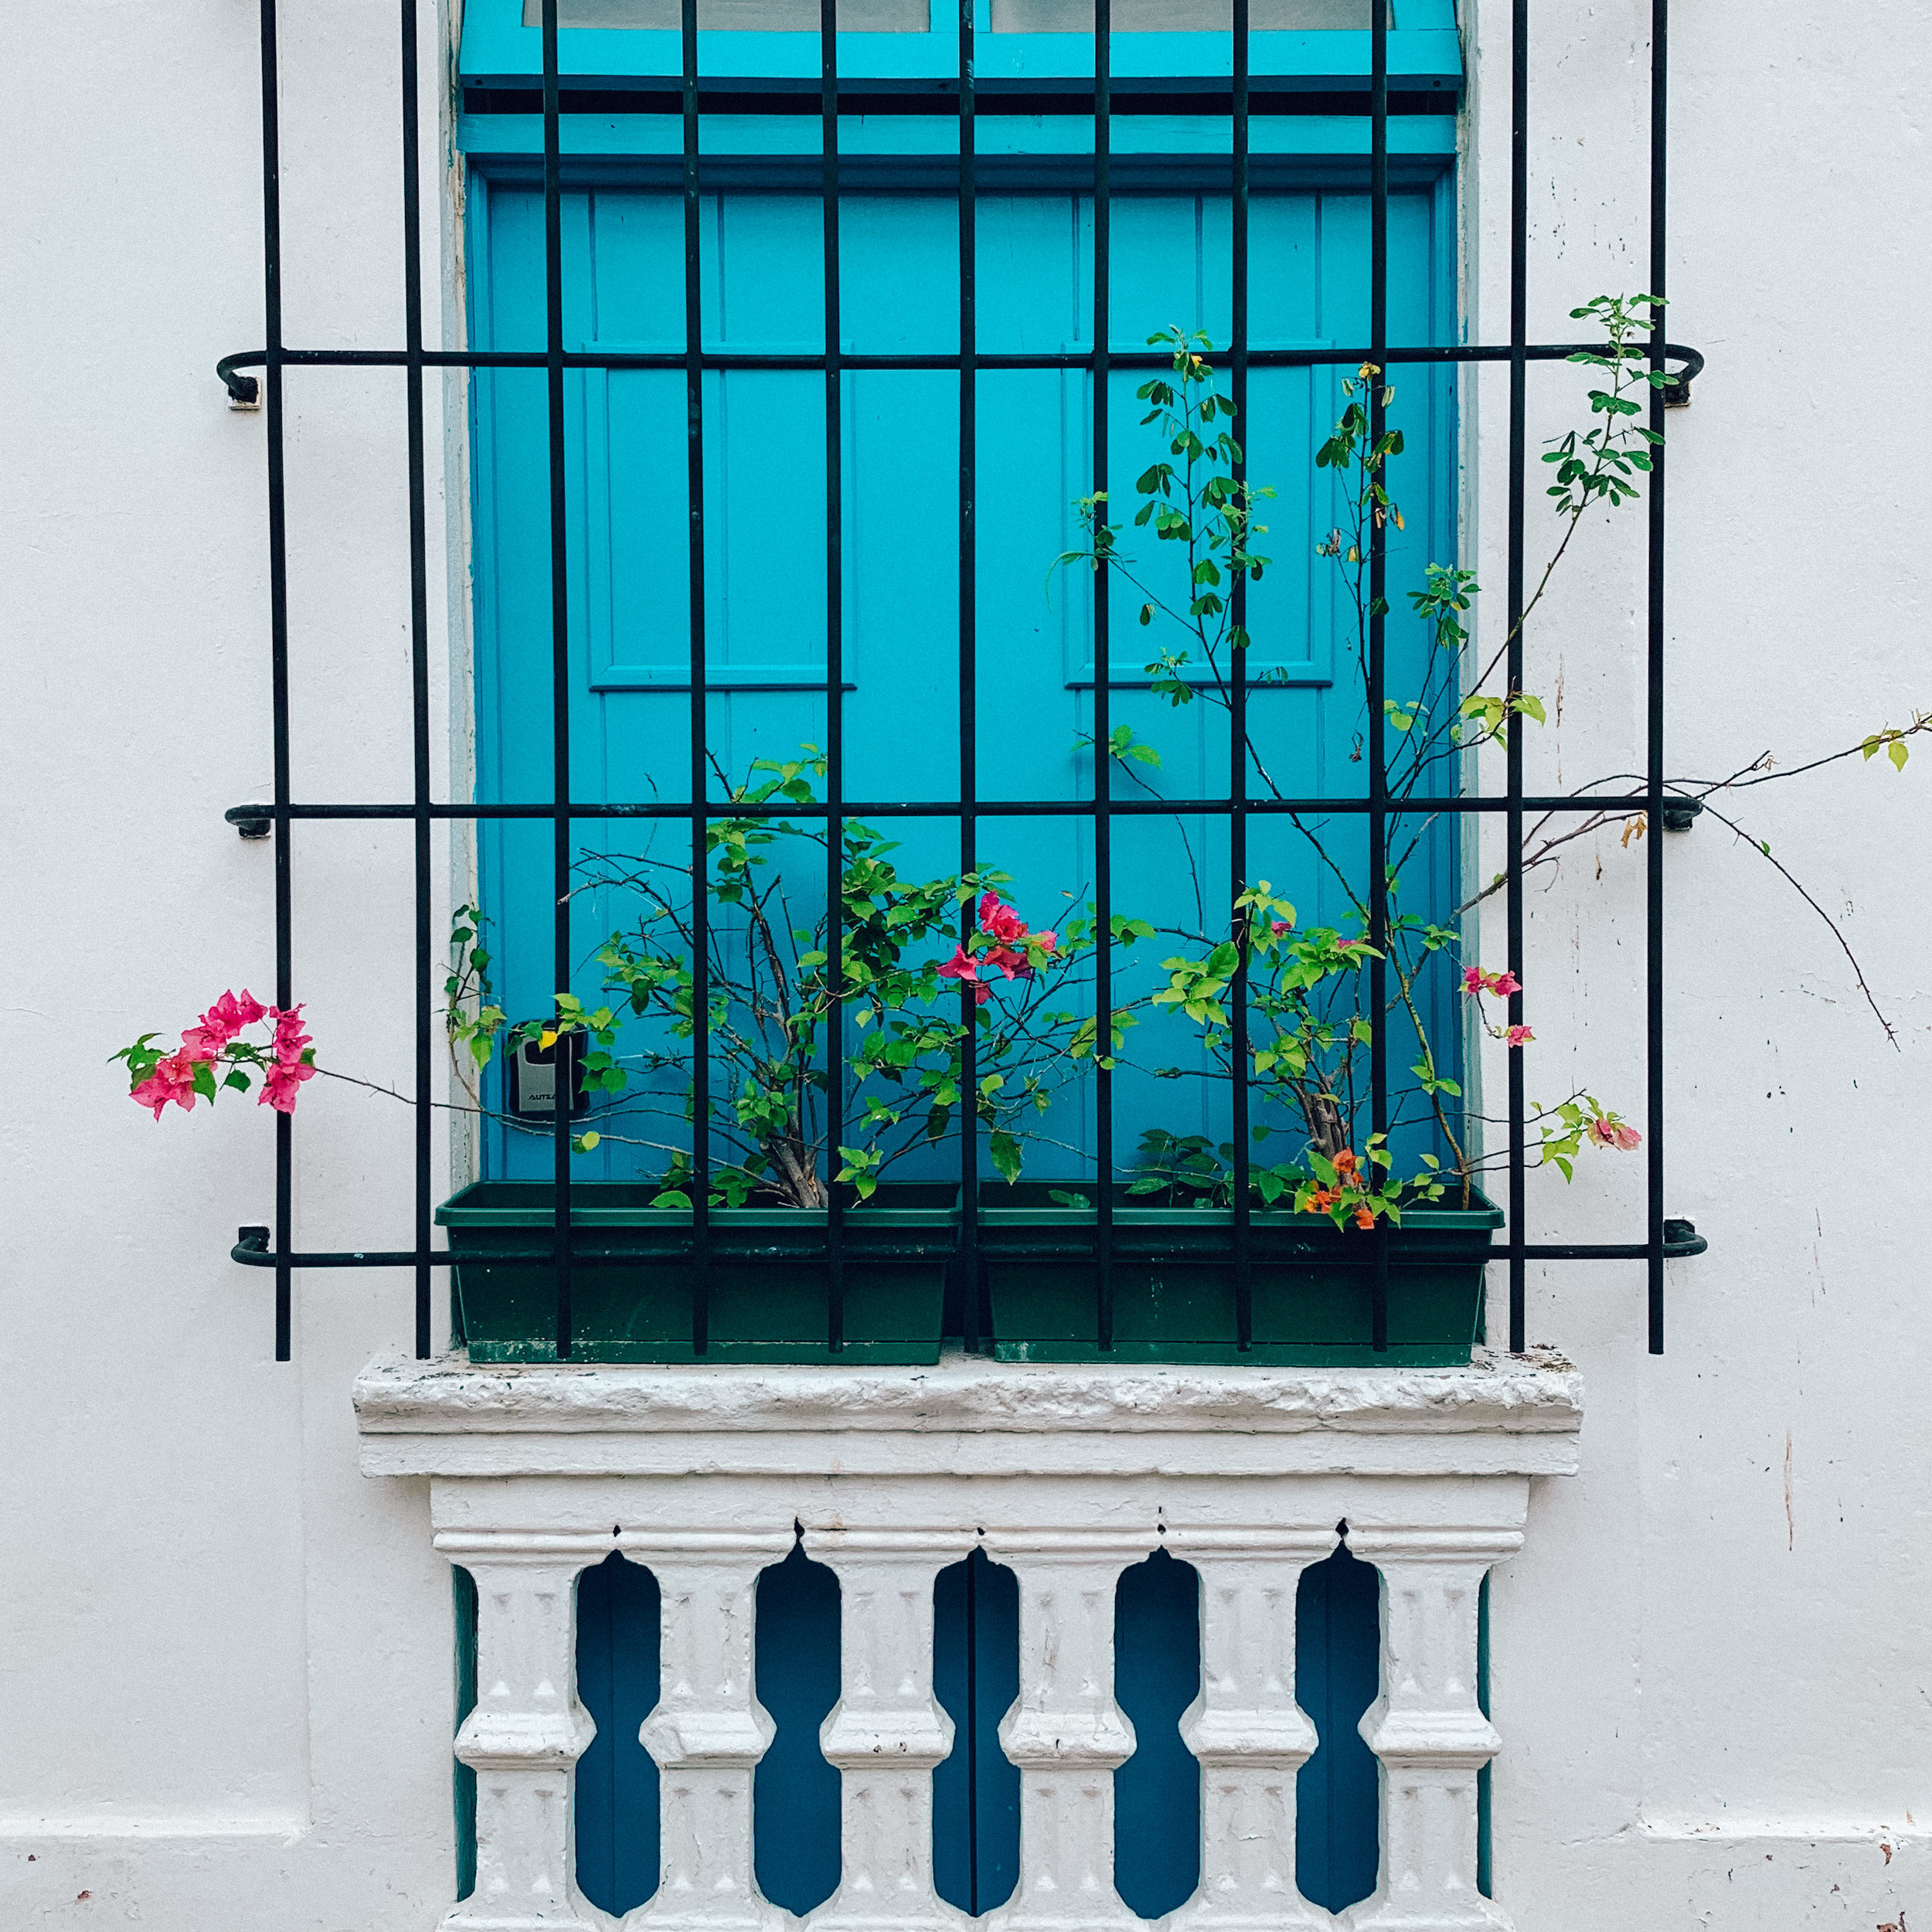 Vibrant blue walls and pink flowers in Santo Domingo, Dominican Republic